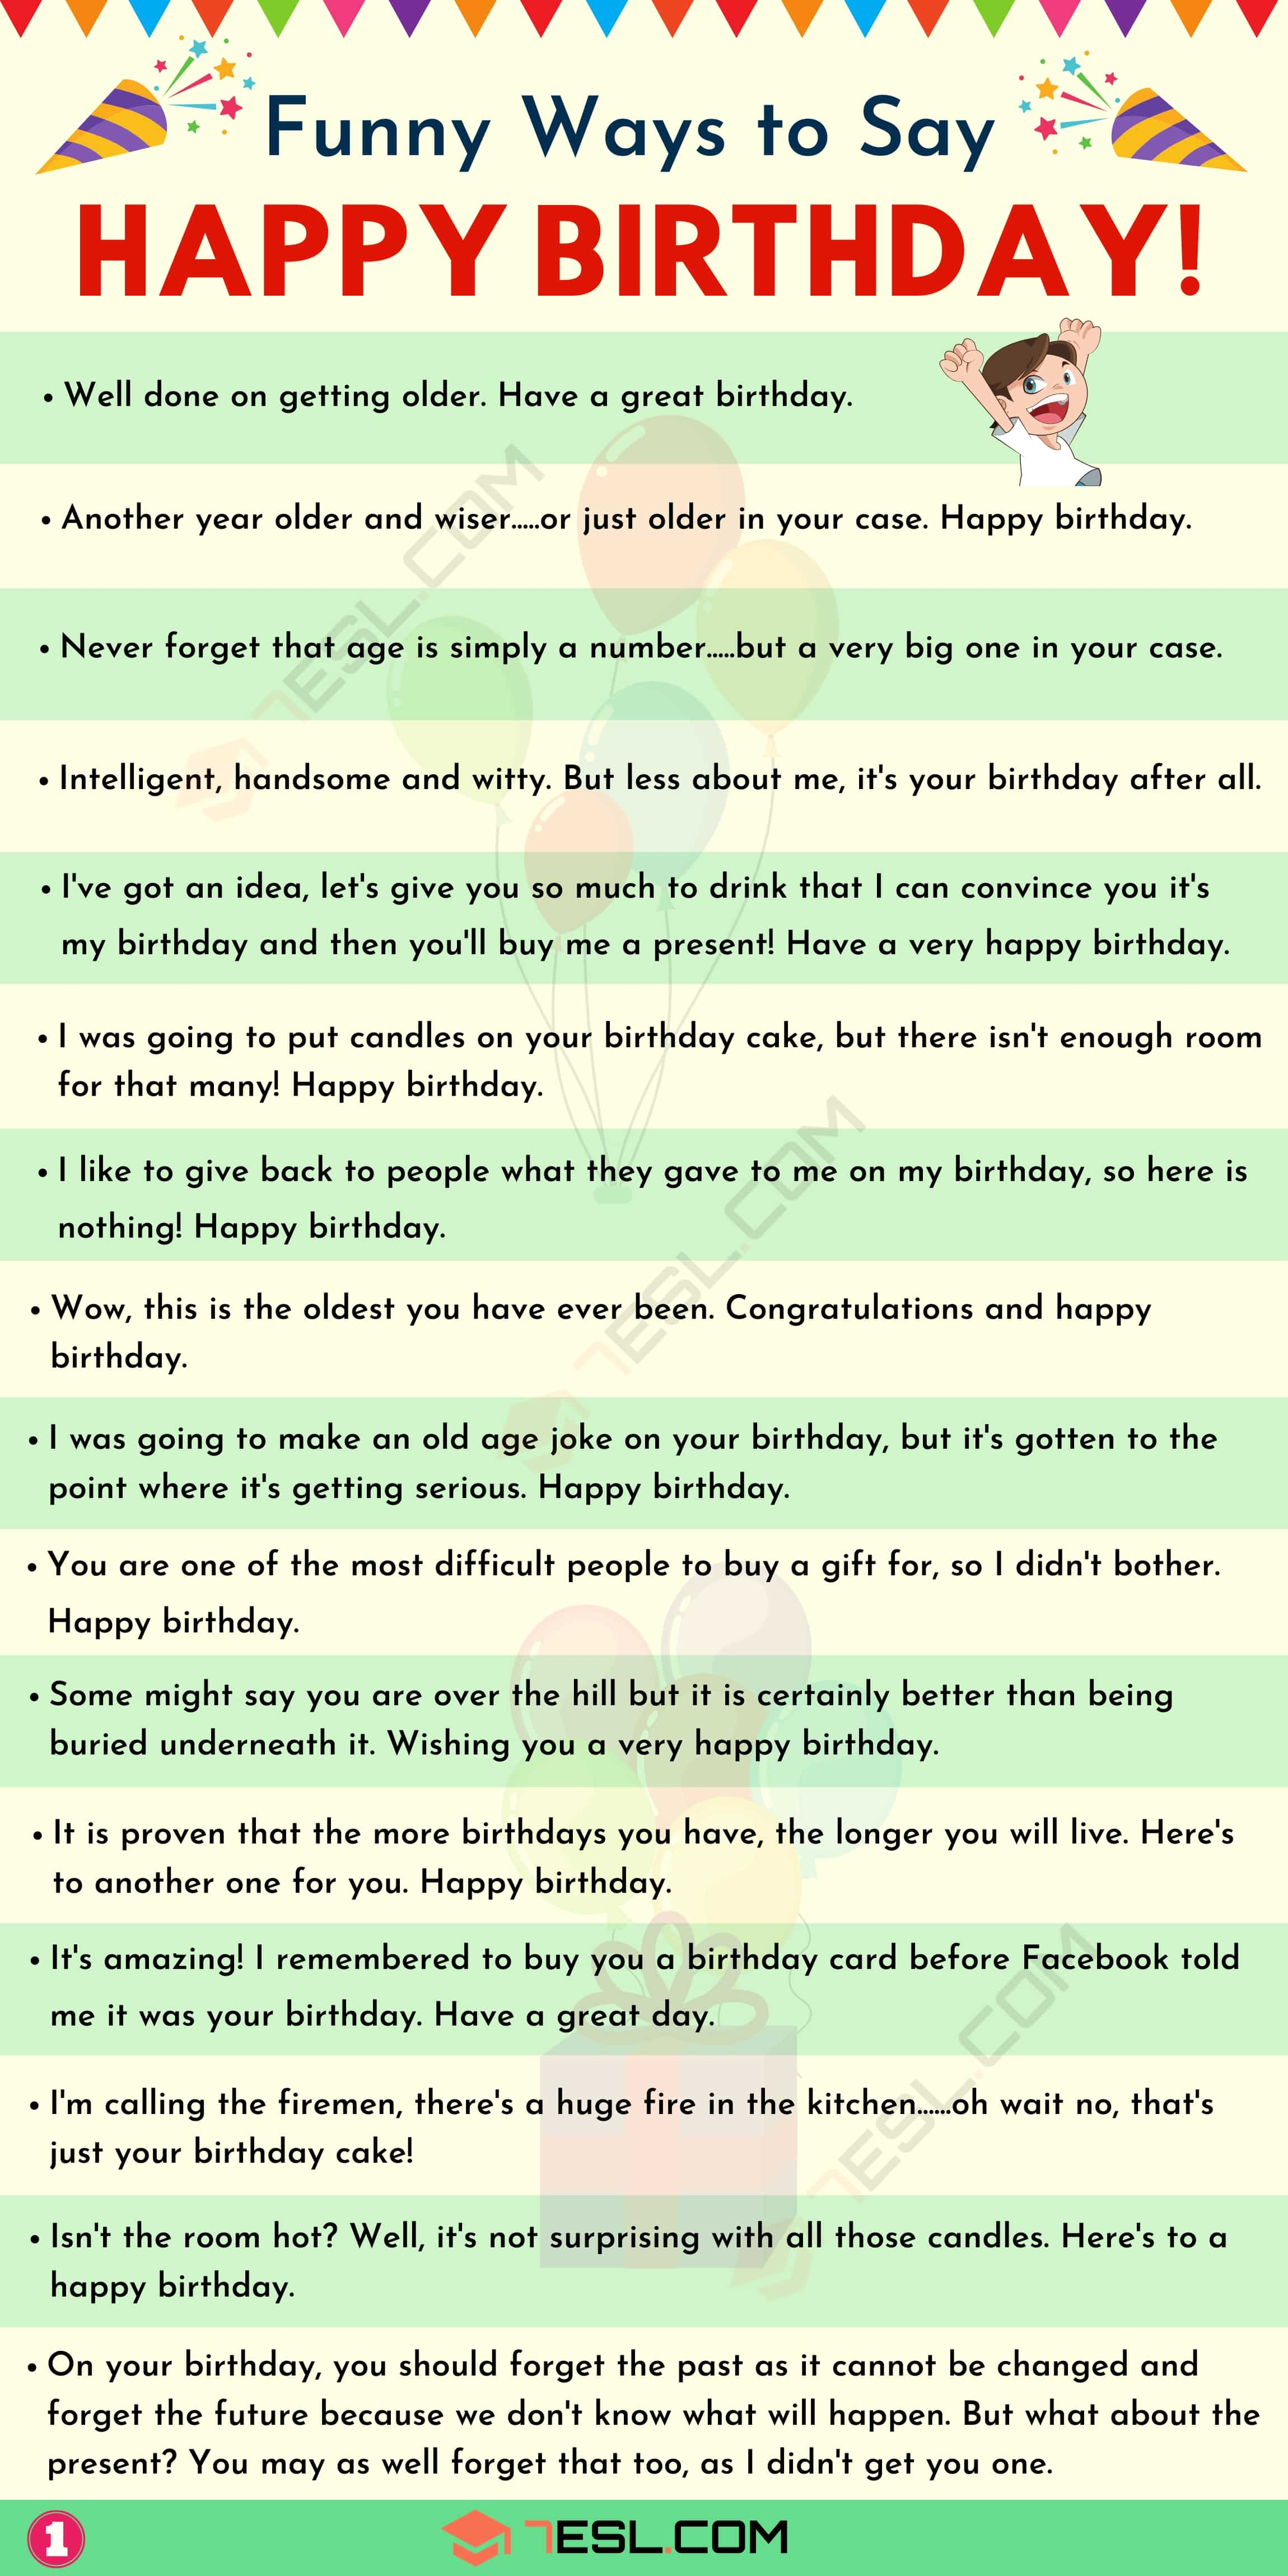 List of funny birthday wishes